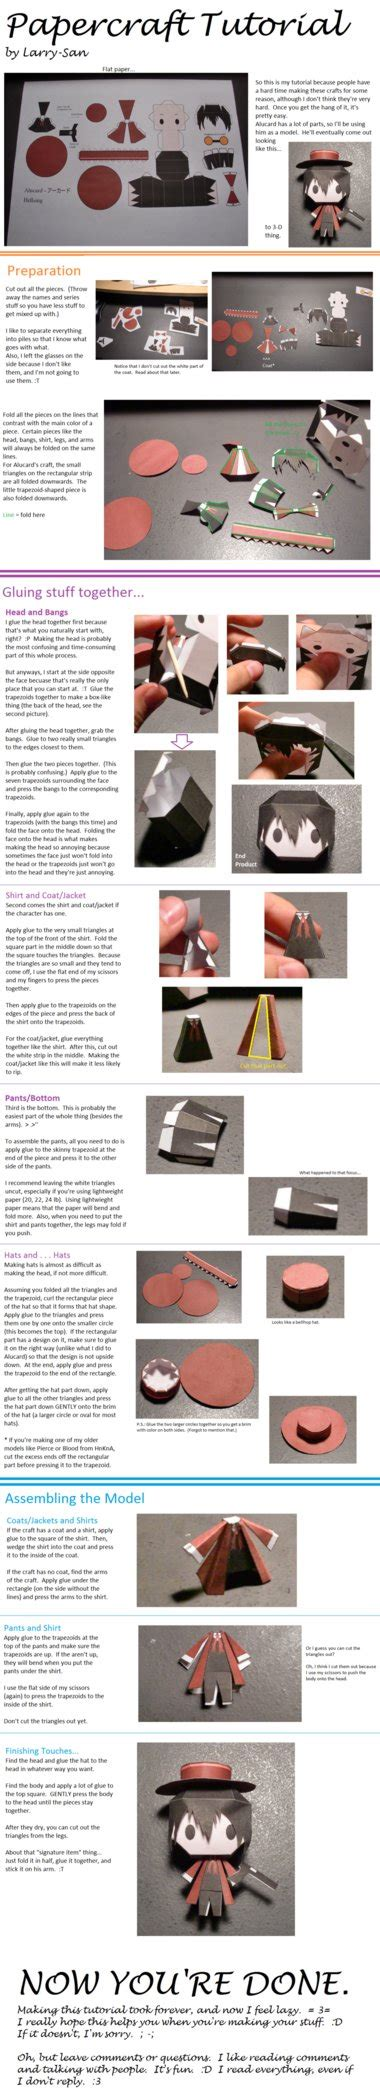 Papercraft Tutorials - chibi papercraft tutorial by larry san on deviantart